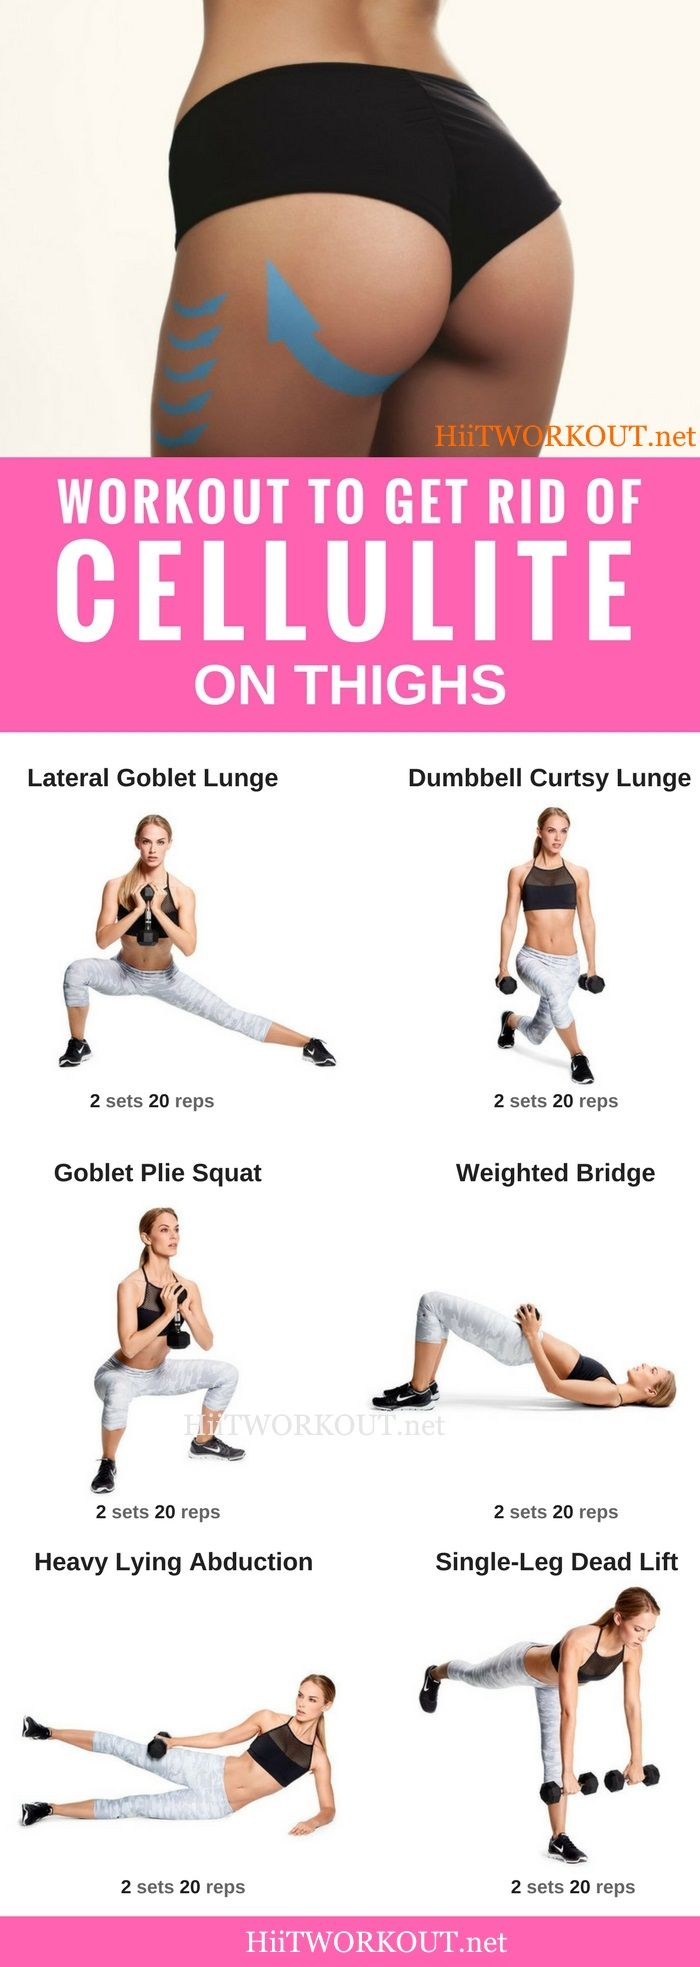 Ultimate Workout to Get Rid of Cellulite on Thighs